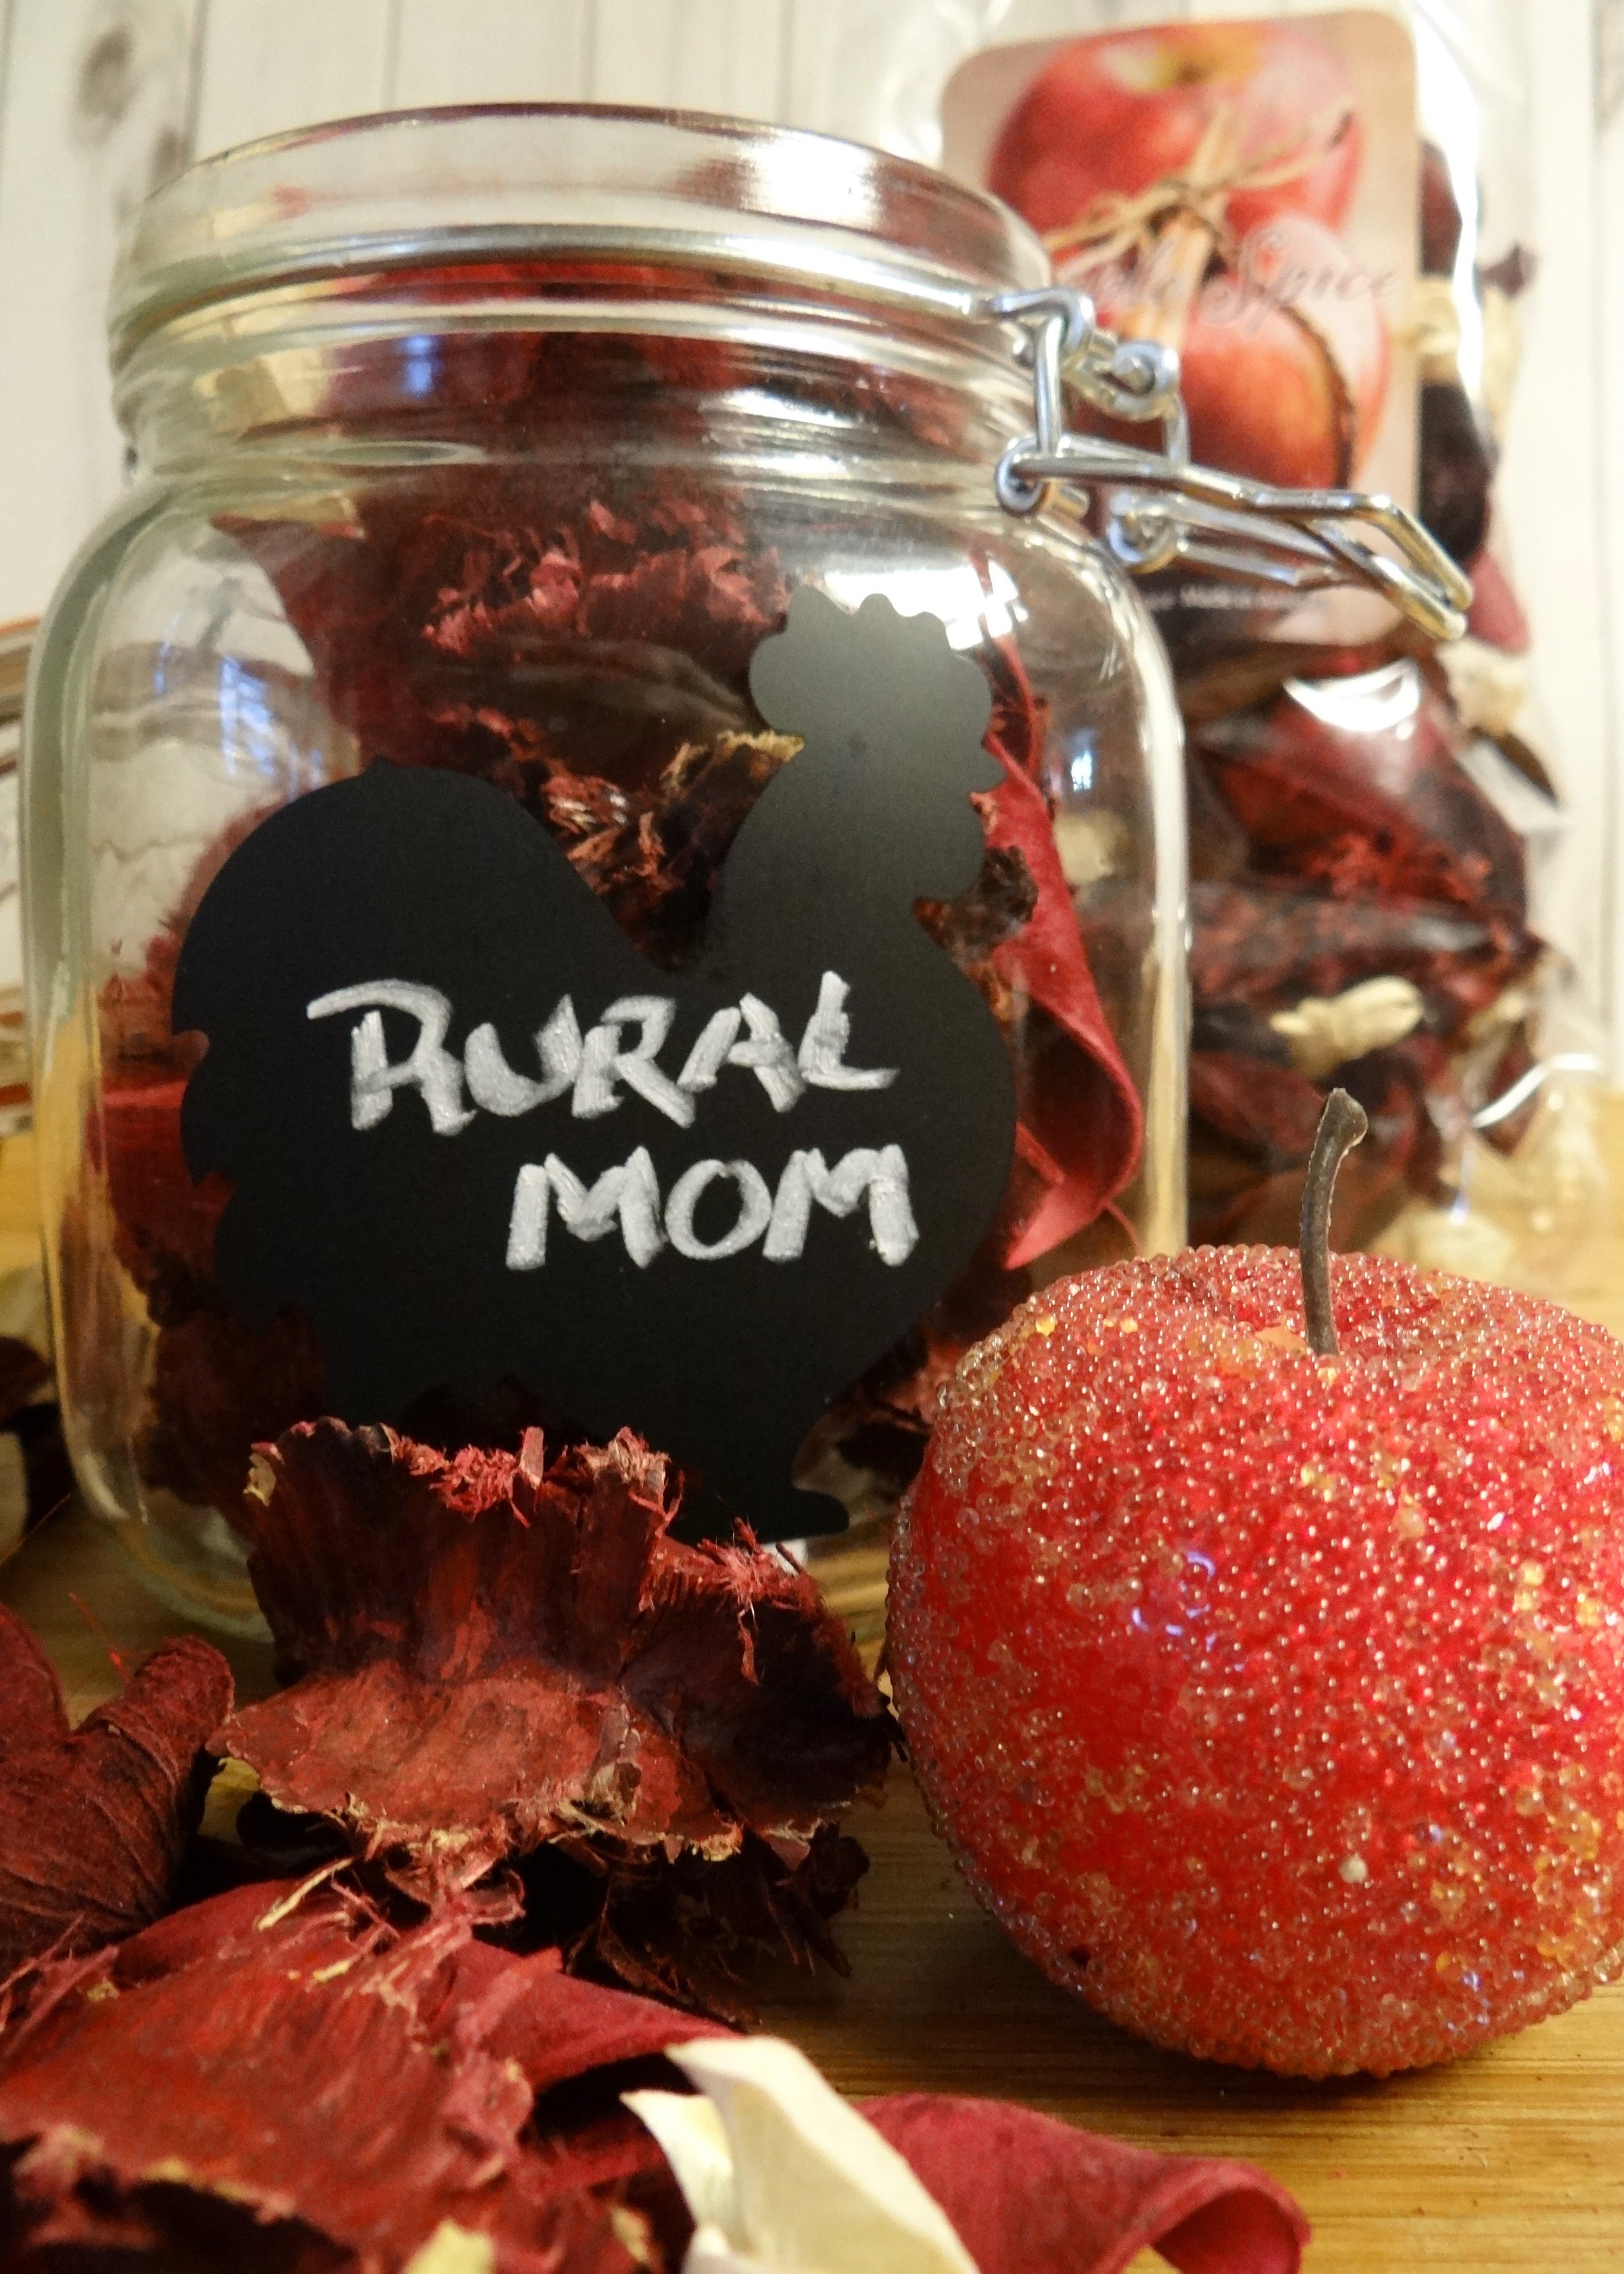 Clever Mason Jar Gift Ideas for Teachers Rural Mom